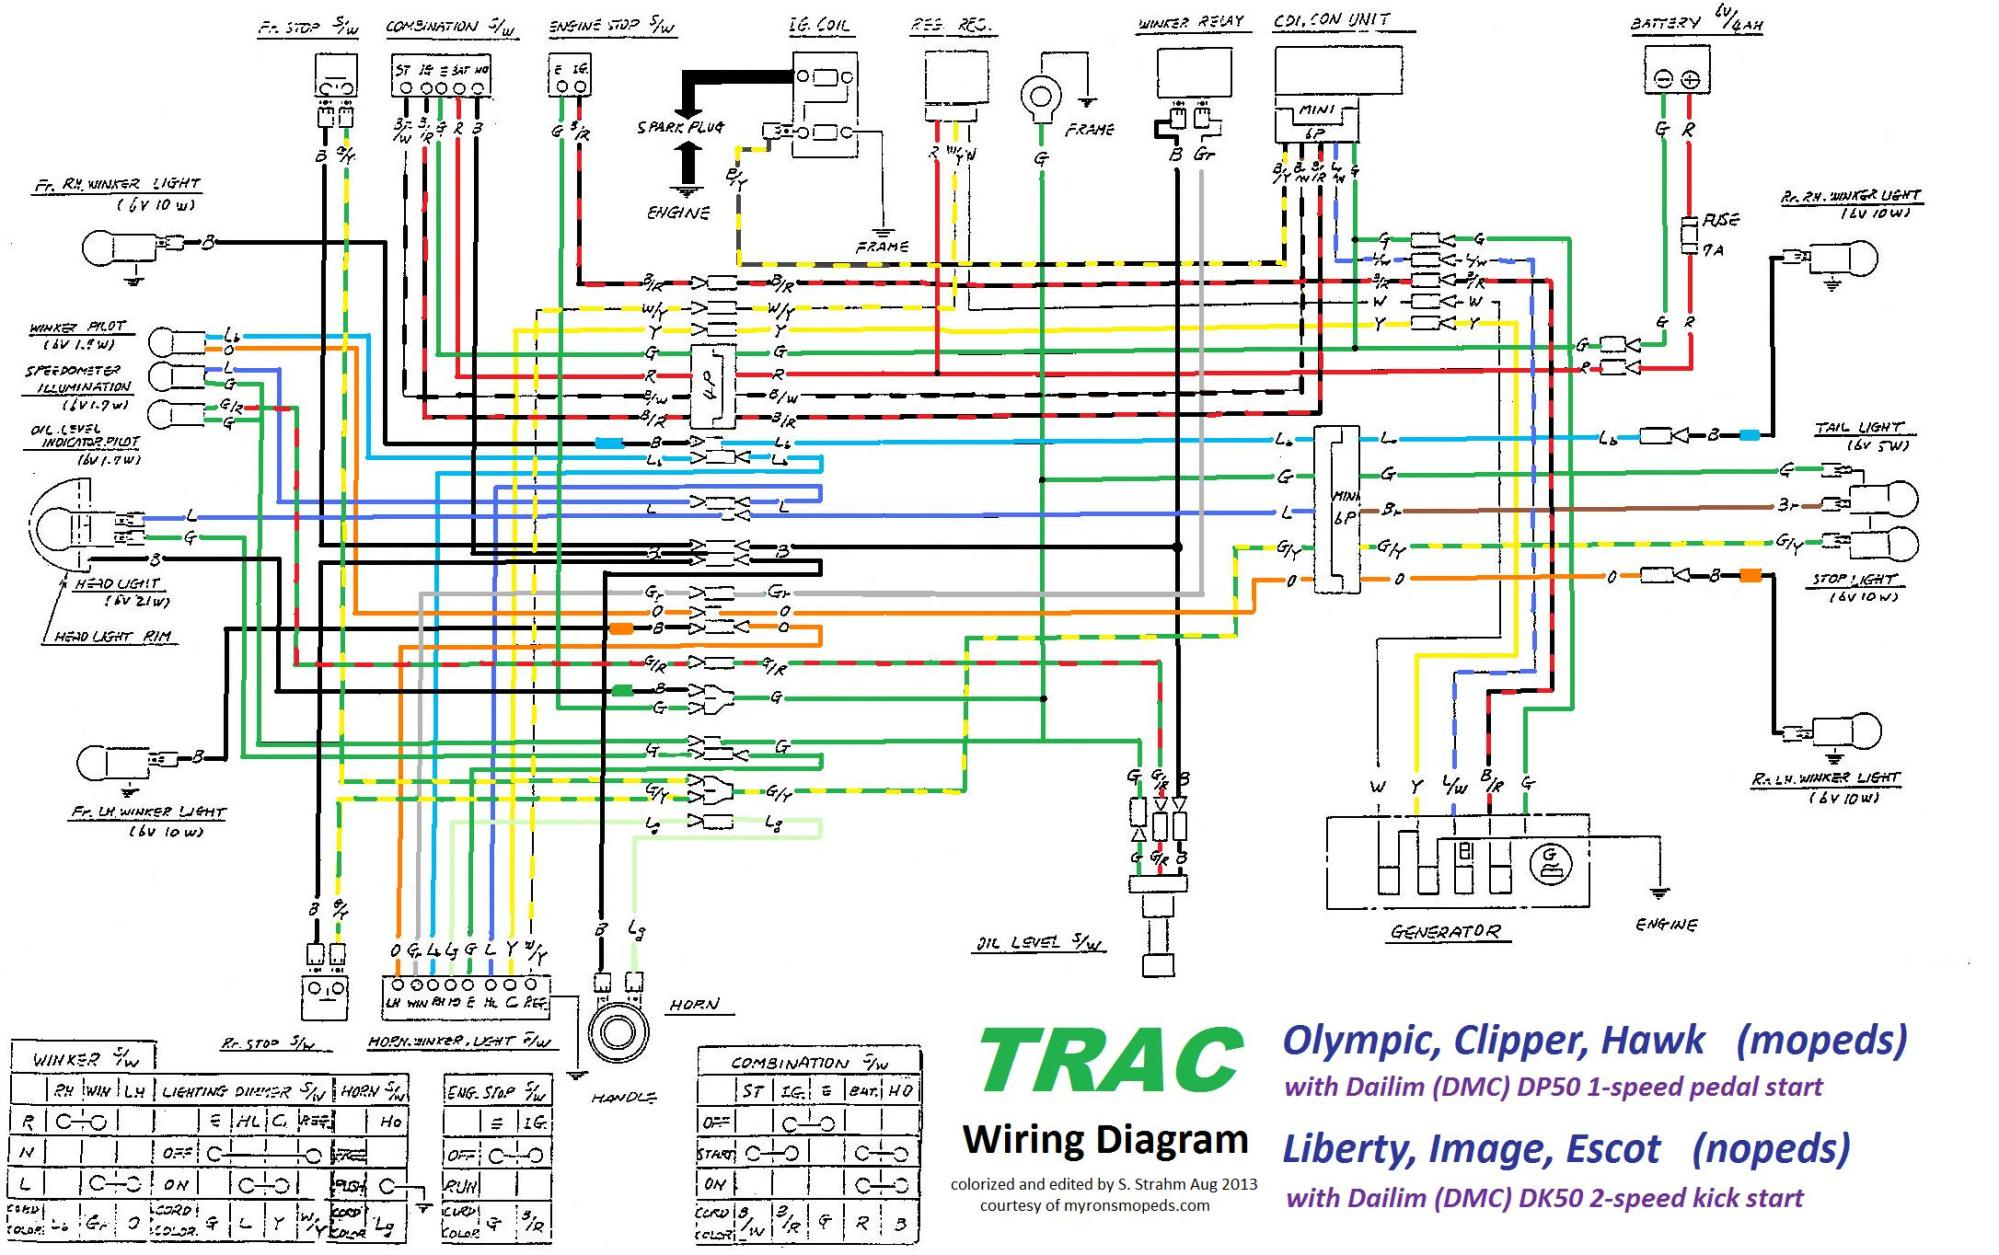 hight resolution of trac clipper headlight blinks with signals u2014 moped armythis diagram is almost exactly what the